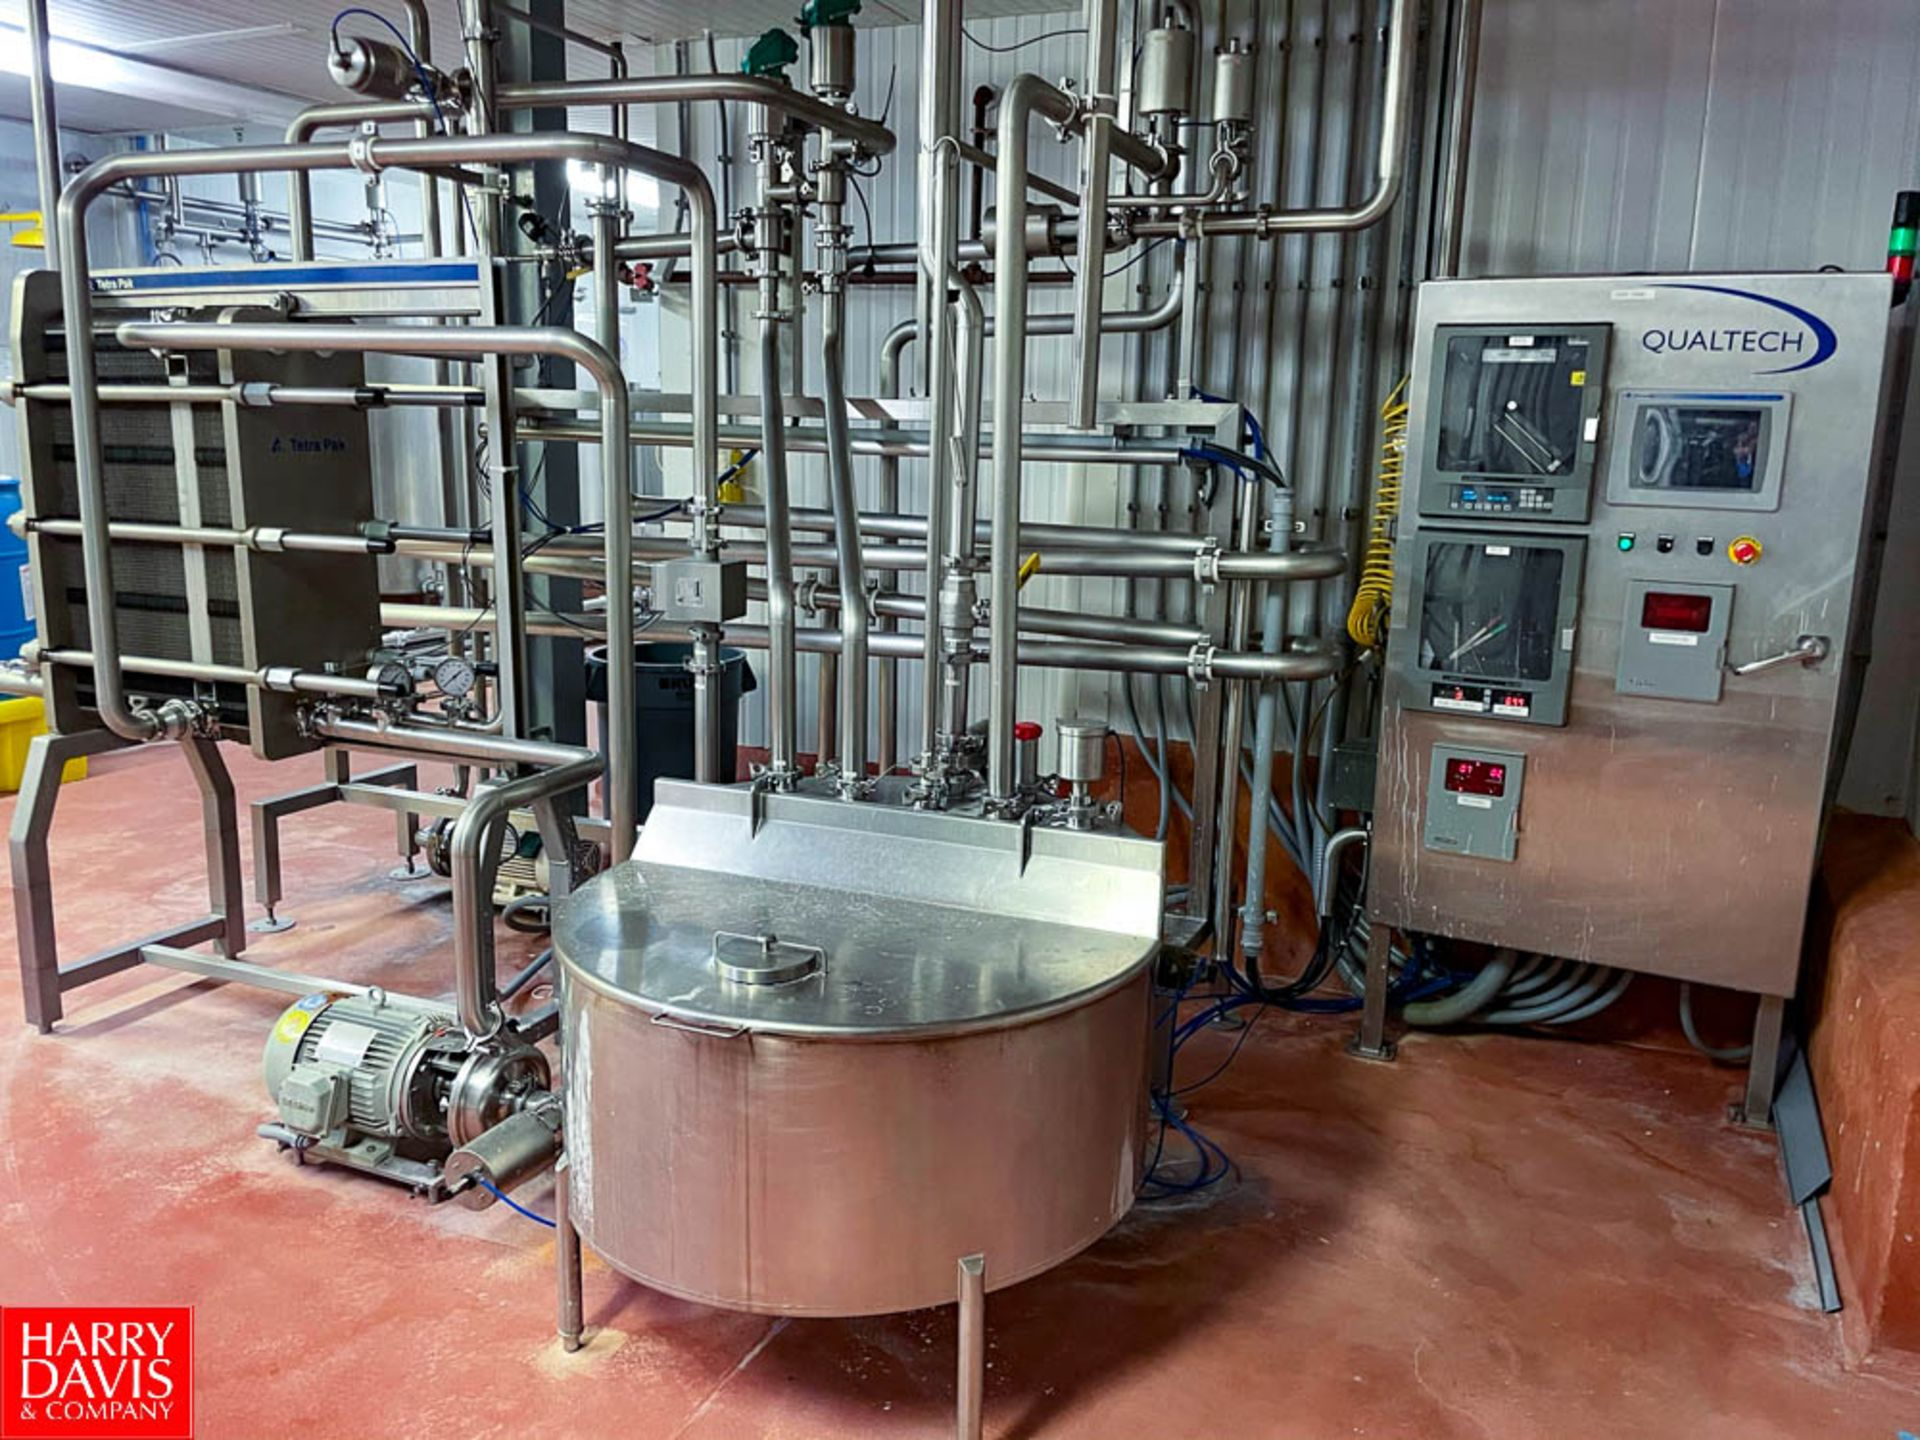 2008 Tetra Pak 36 GPM Pasteurizer Including Tetra Pak 3-Zone S/S Frame Plate Heat Exchanger, S/S - Image 3 of 6